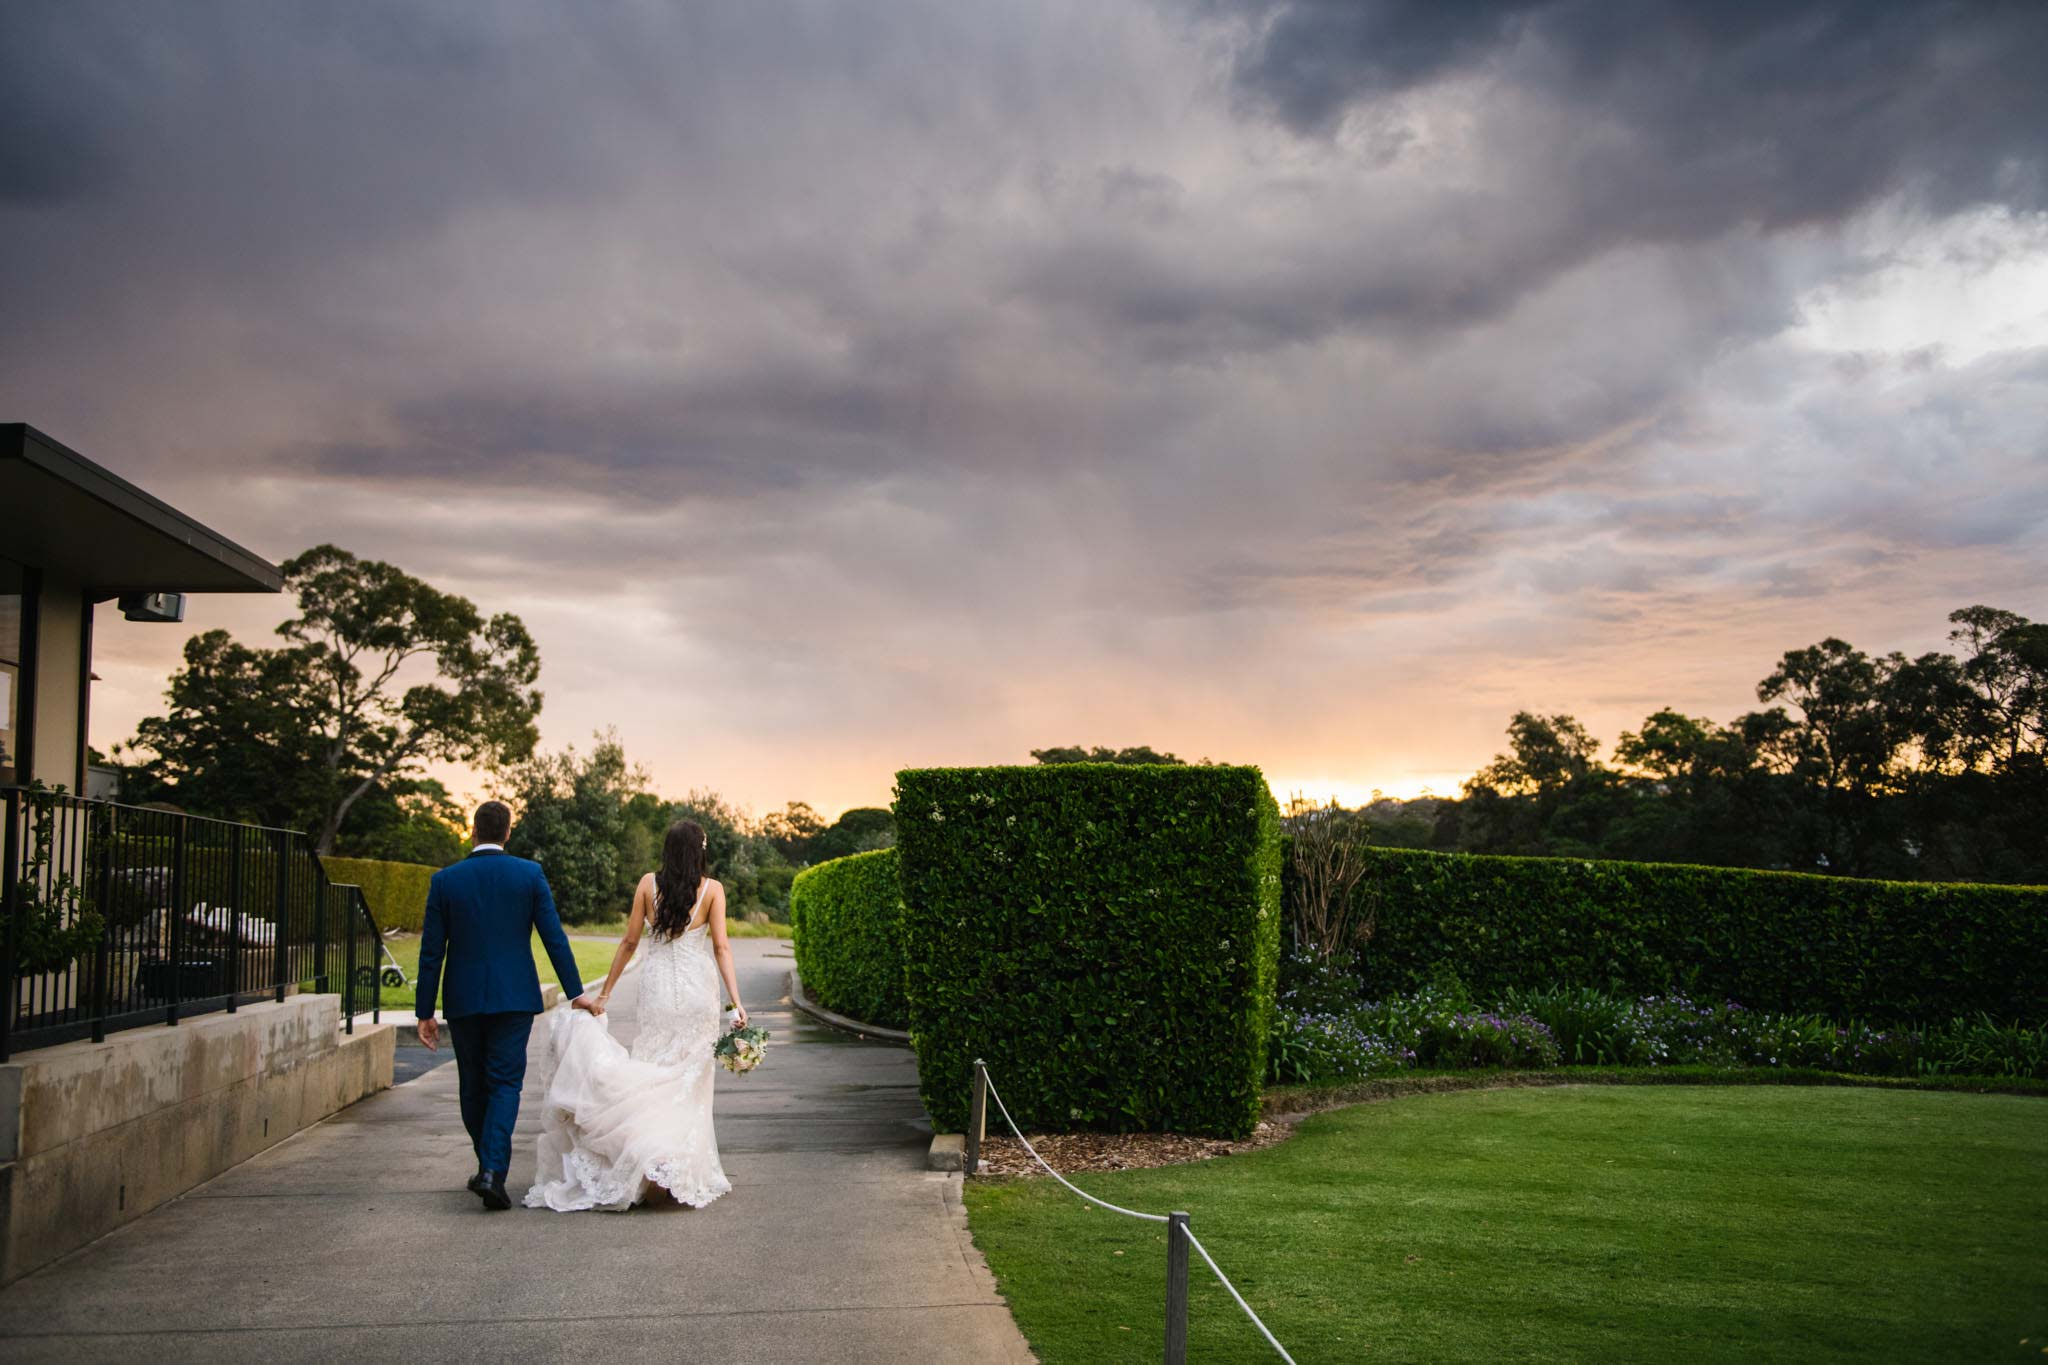 Beautiful sunset clouds above couple at Manly Golf Club